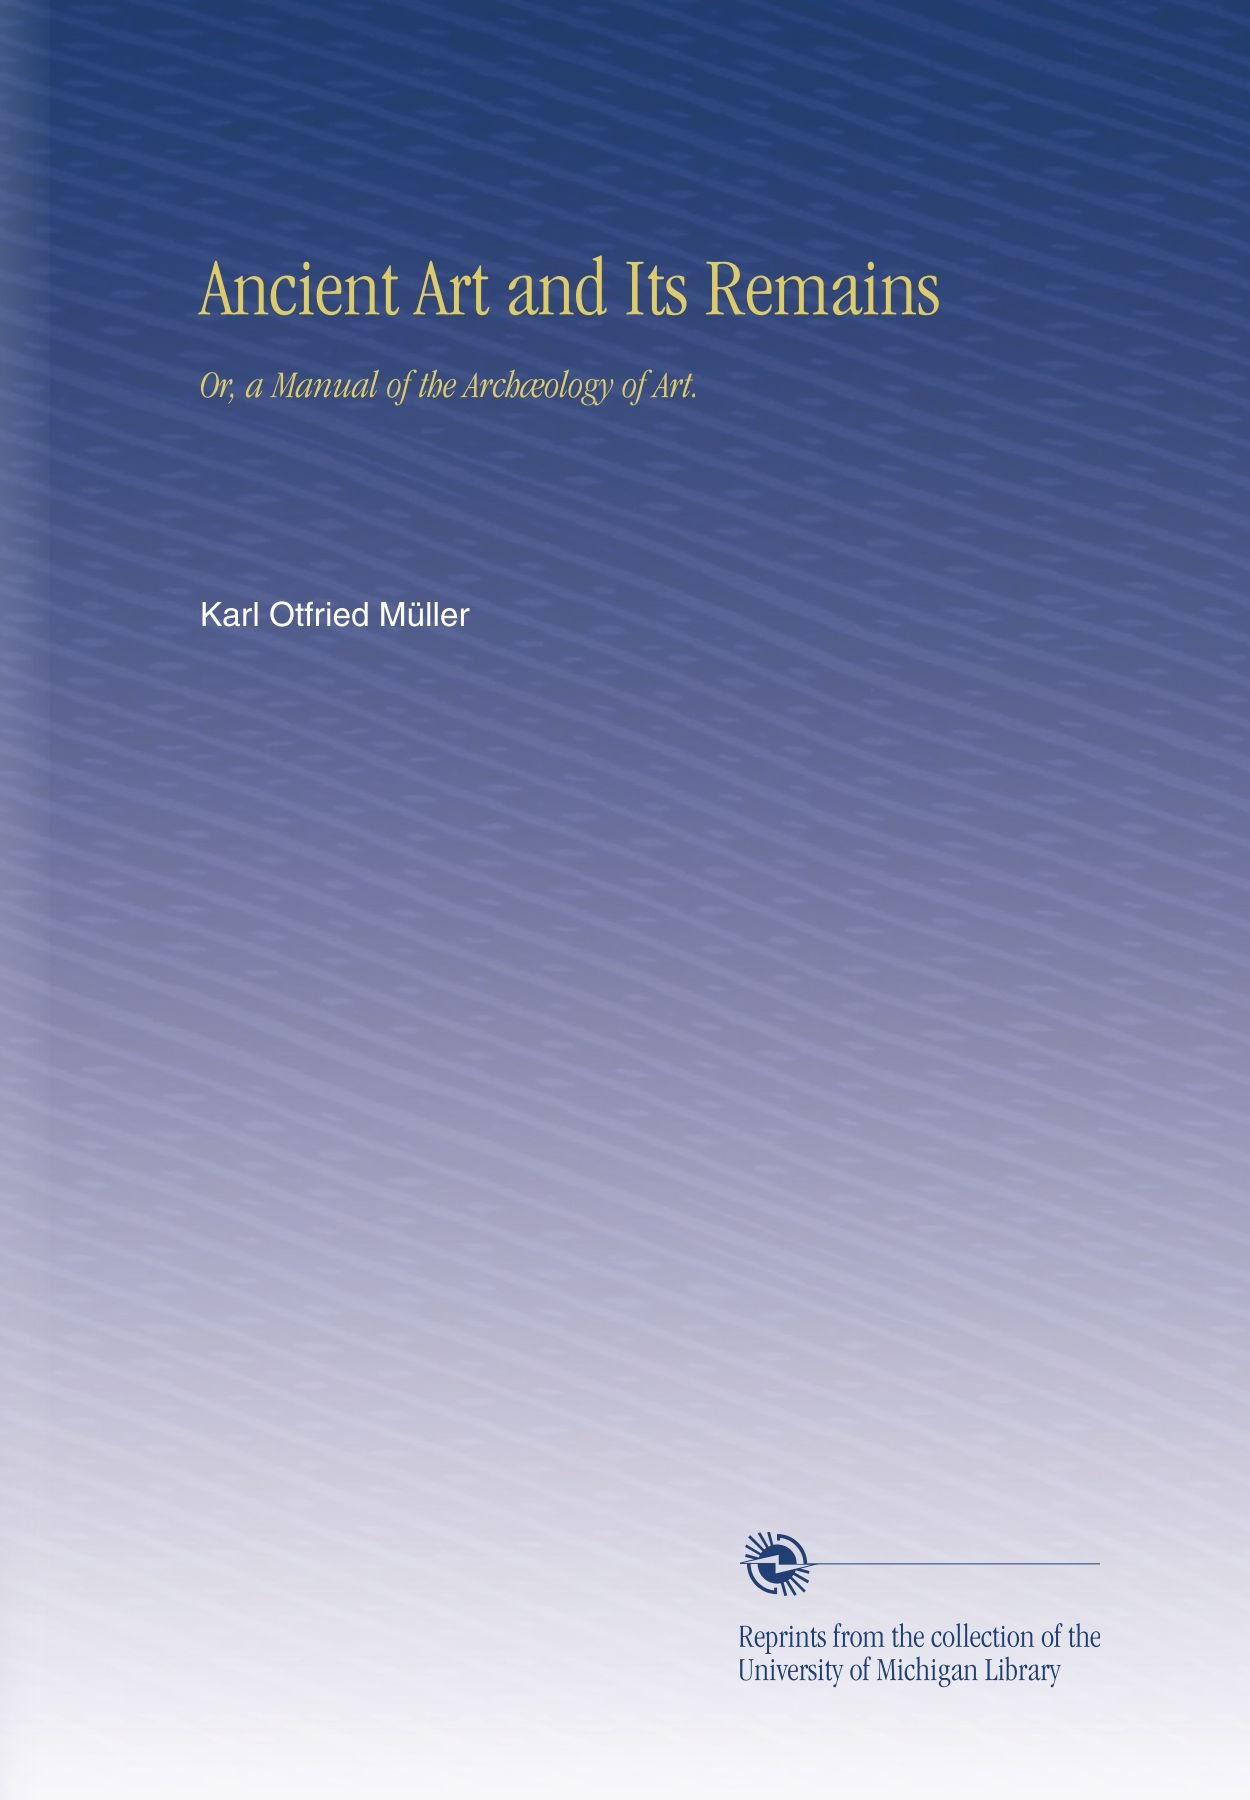 Download Ancient Art and Its Remains: Or, a Manual of the Archæology of Art. PDF